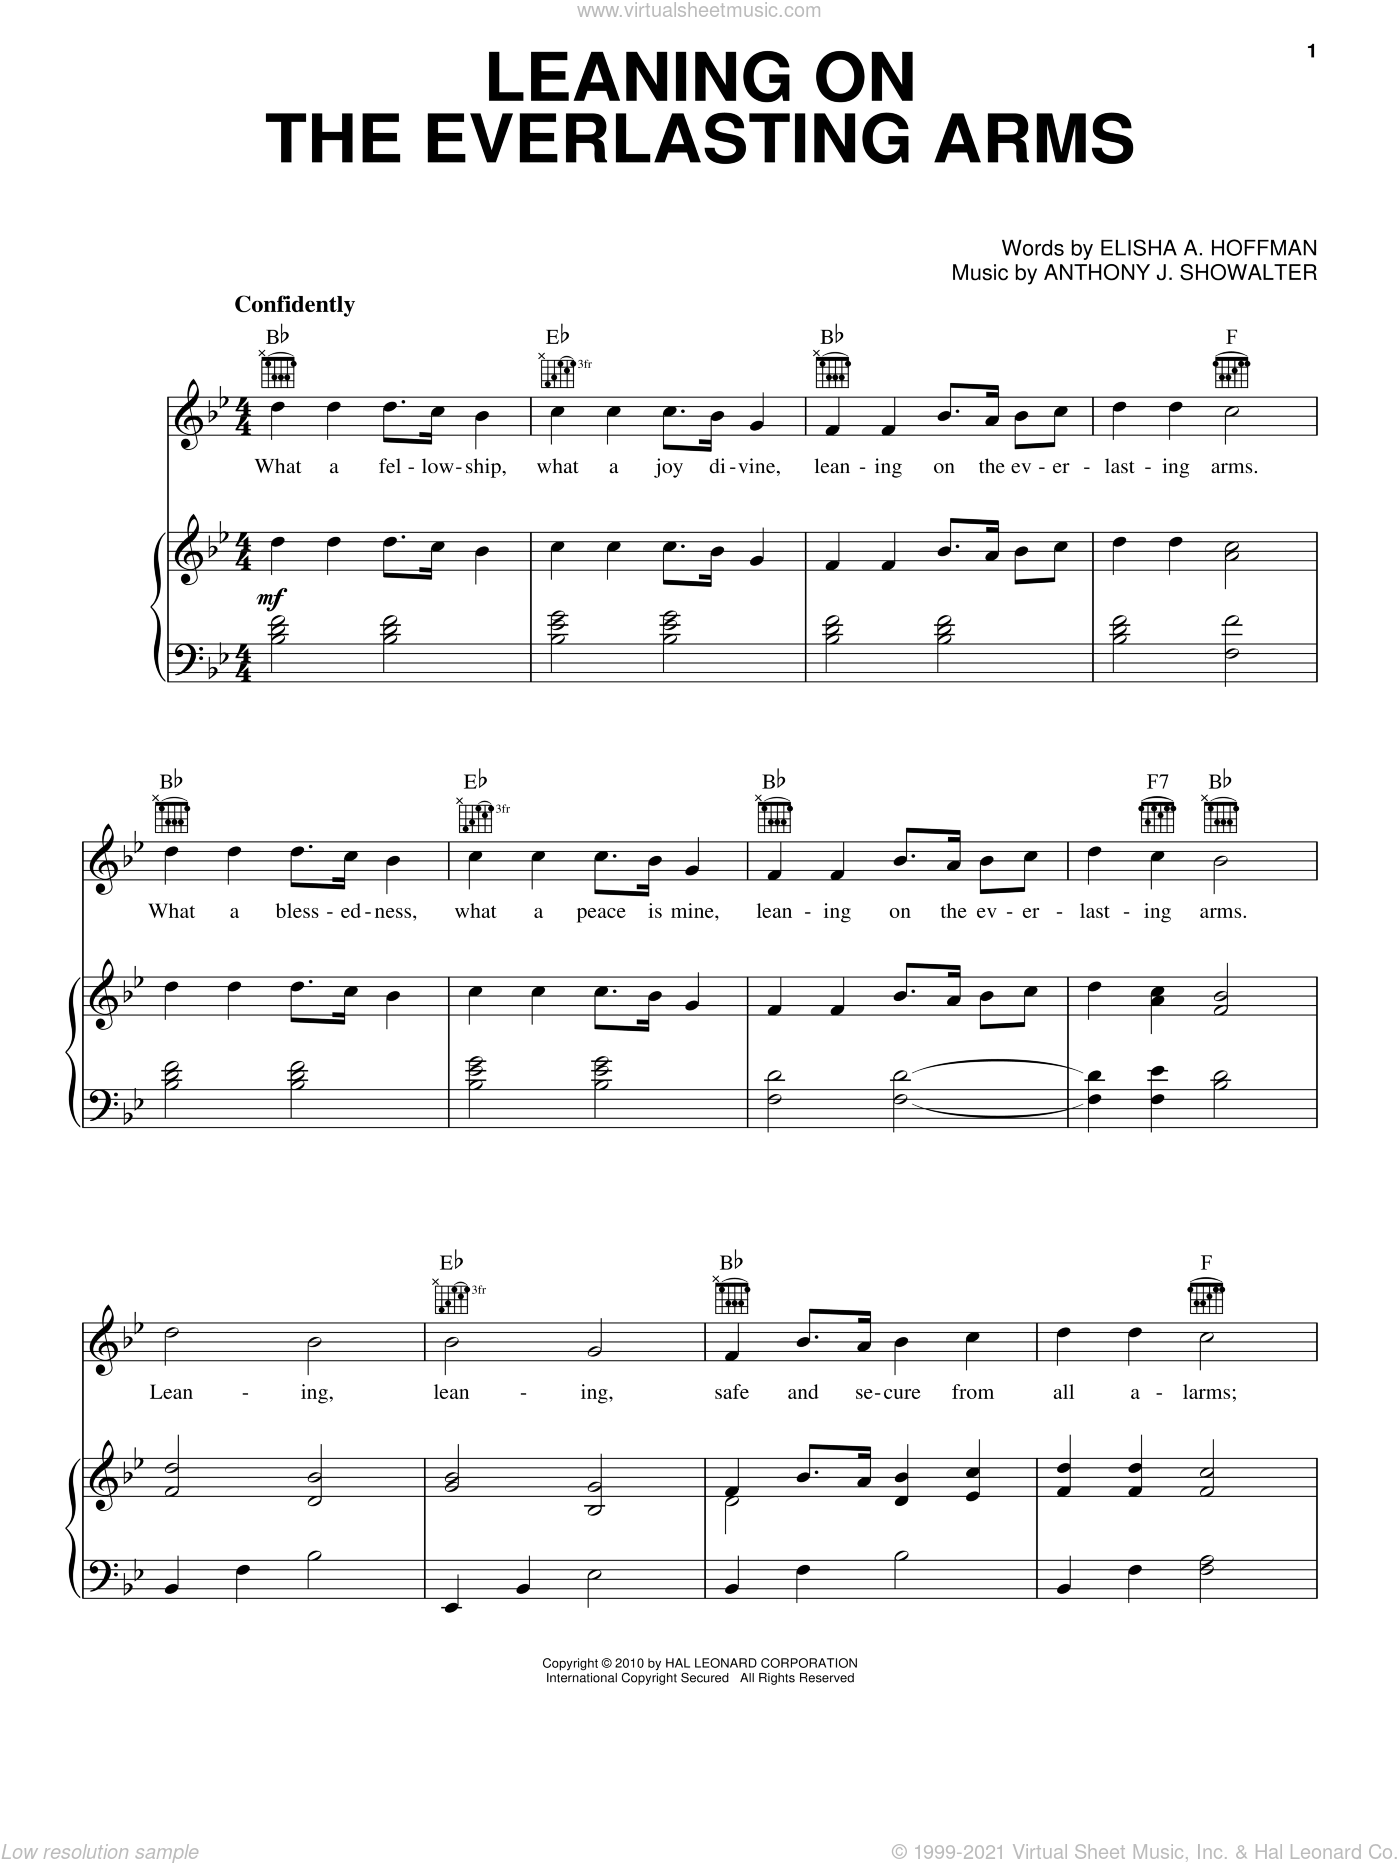 Leaning On The Everlasting Arms sheet music for voice, piano or guitar by Anthony J. Showalter and Elisha A. Hoffman. Score Image Preview.